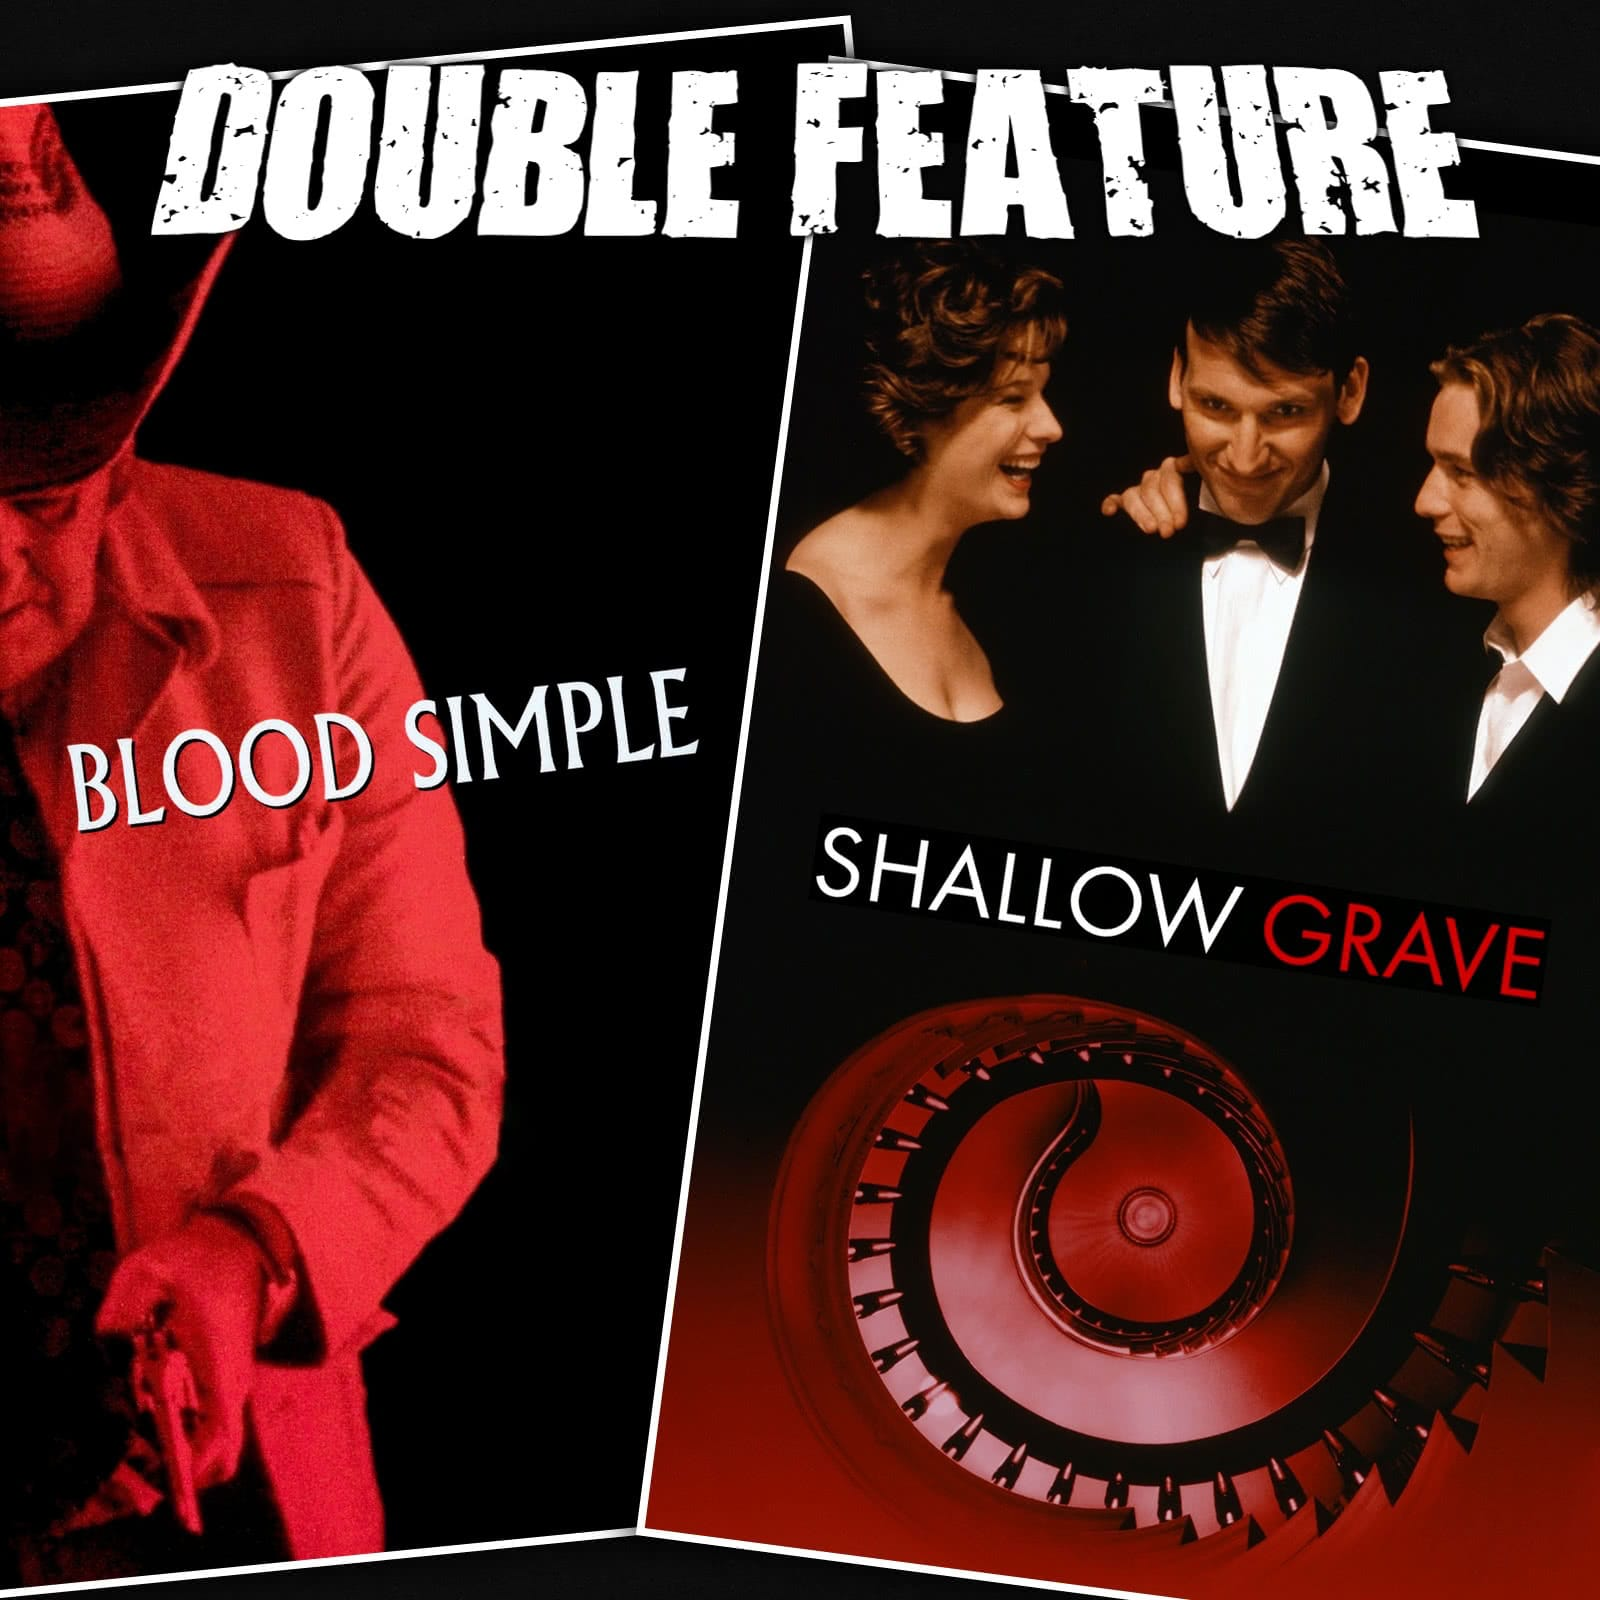 Blood simple movie posters